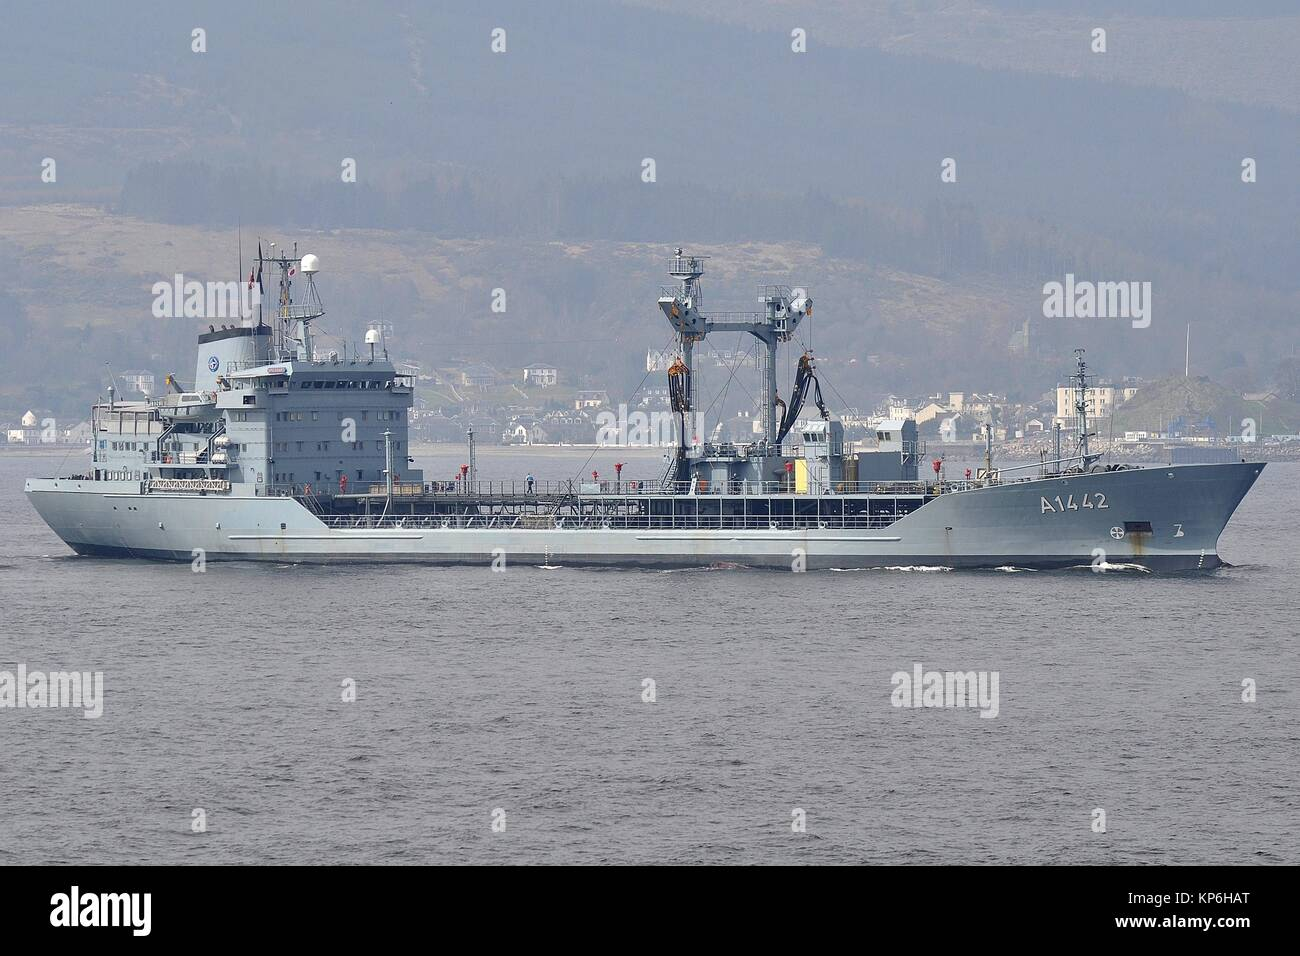 A1442 FGS SPESSART, RHON CLASS REPLENISHMENT OILER OF THE GERMAN NAVY. - Stock Image